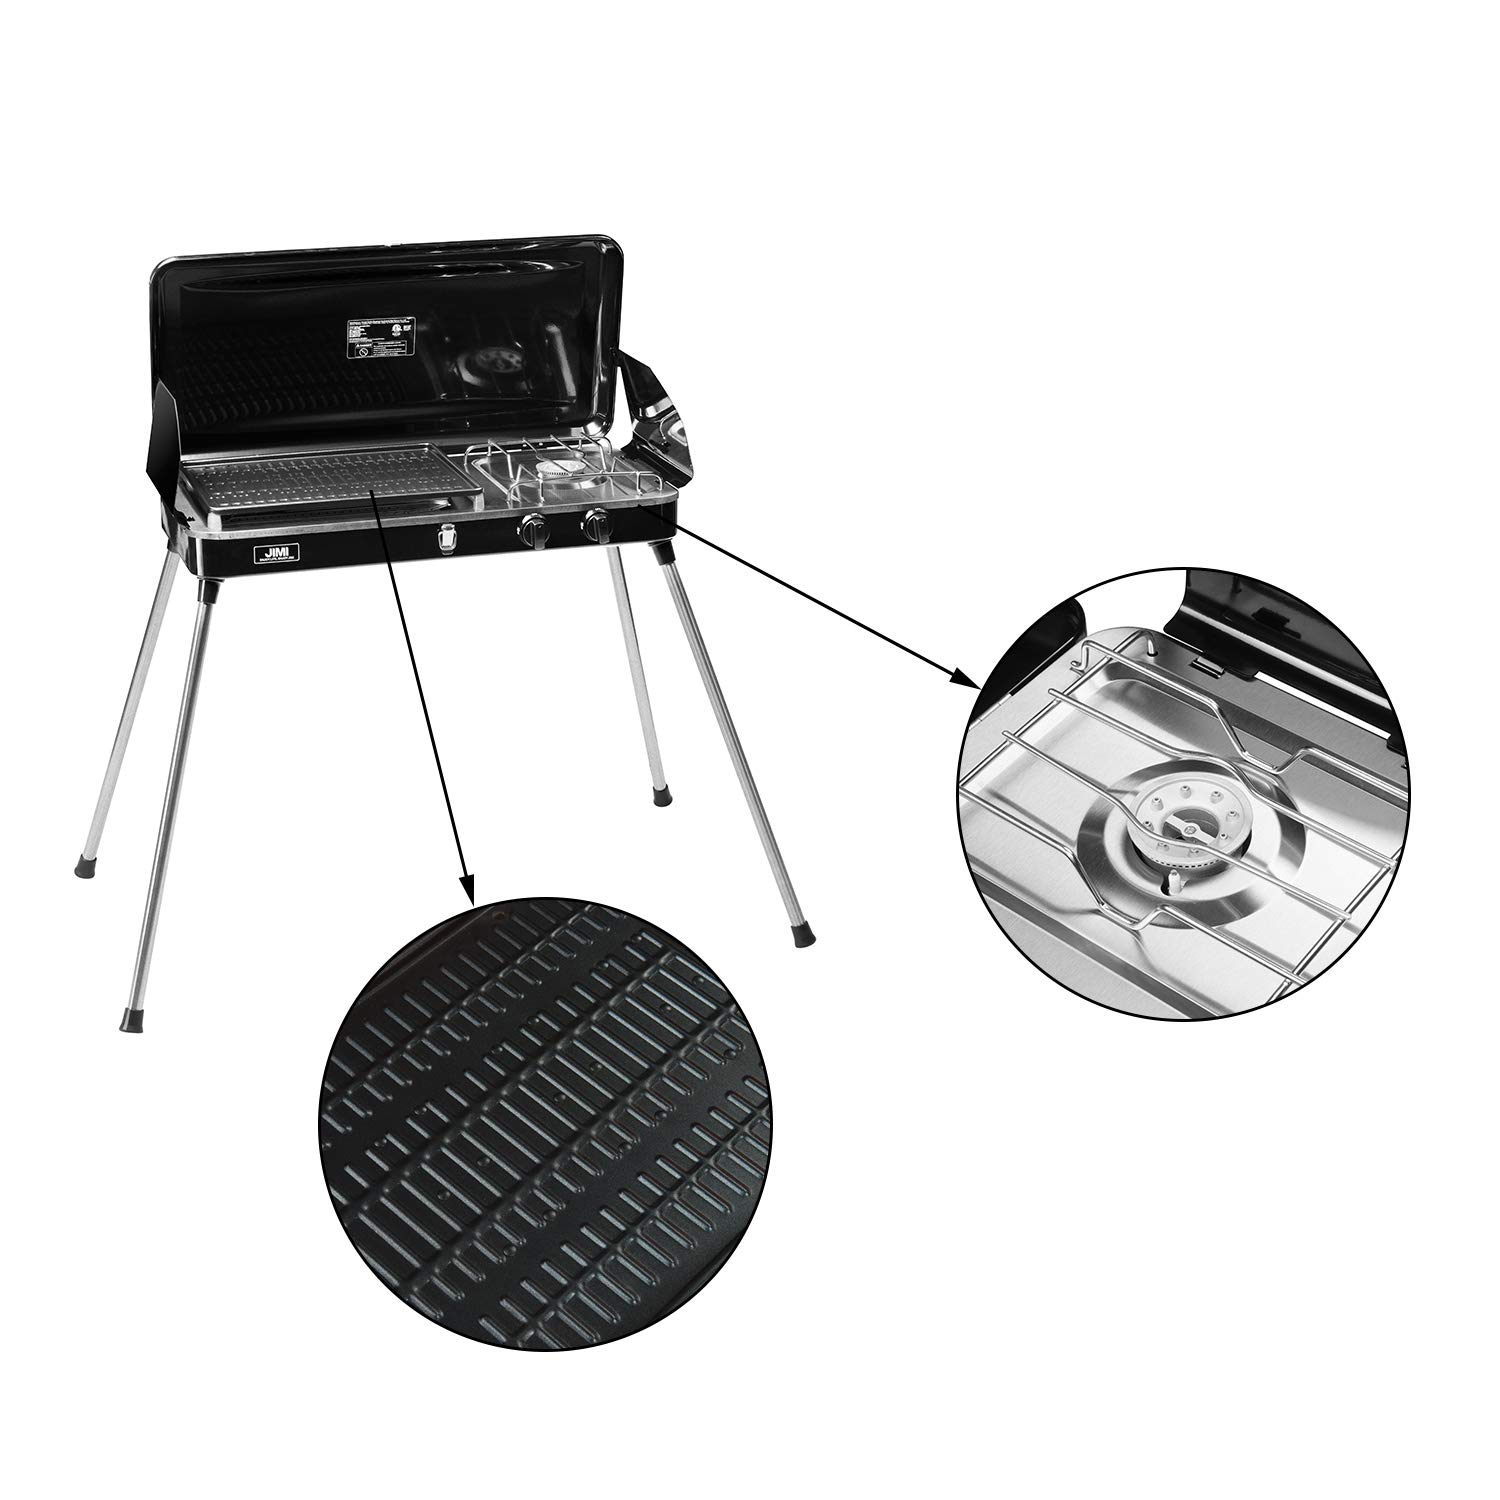 1fea5d6ab13fc6 Amazon.com: Liquid Propane BBQ Gas Grill,Barbecue Grill Outdoor Cooking  Camping Stove Portable Stainless Steel with Free Hose and Adapter for  Outdoor ...